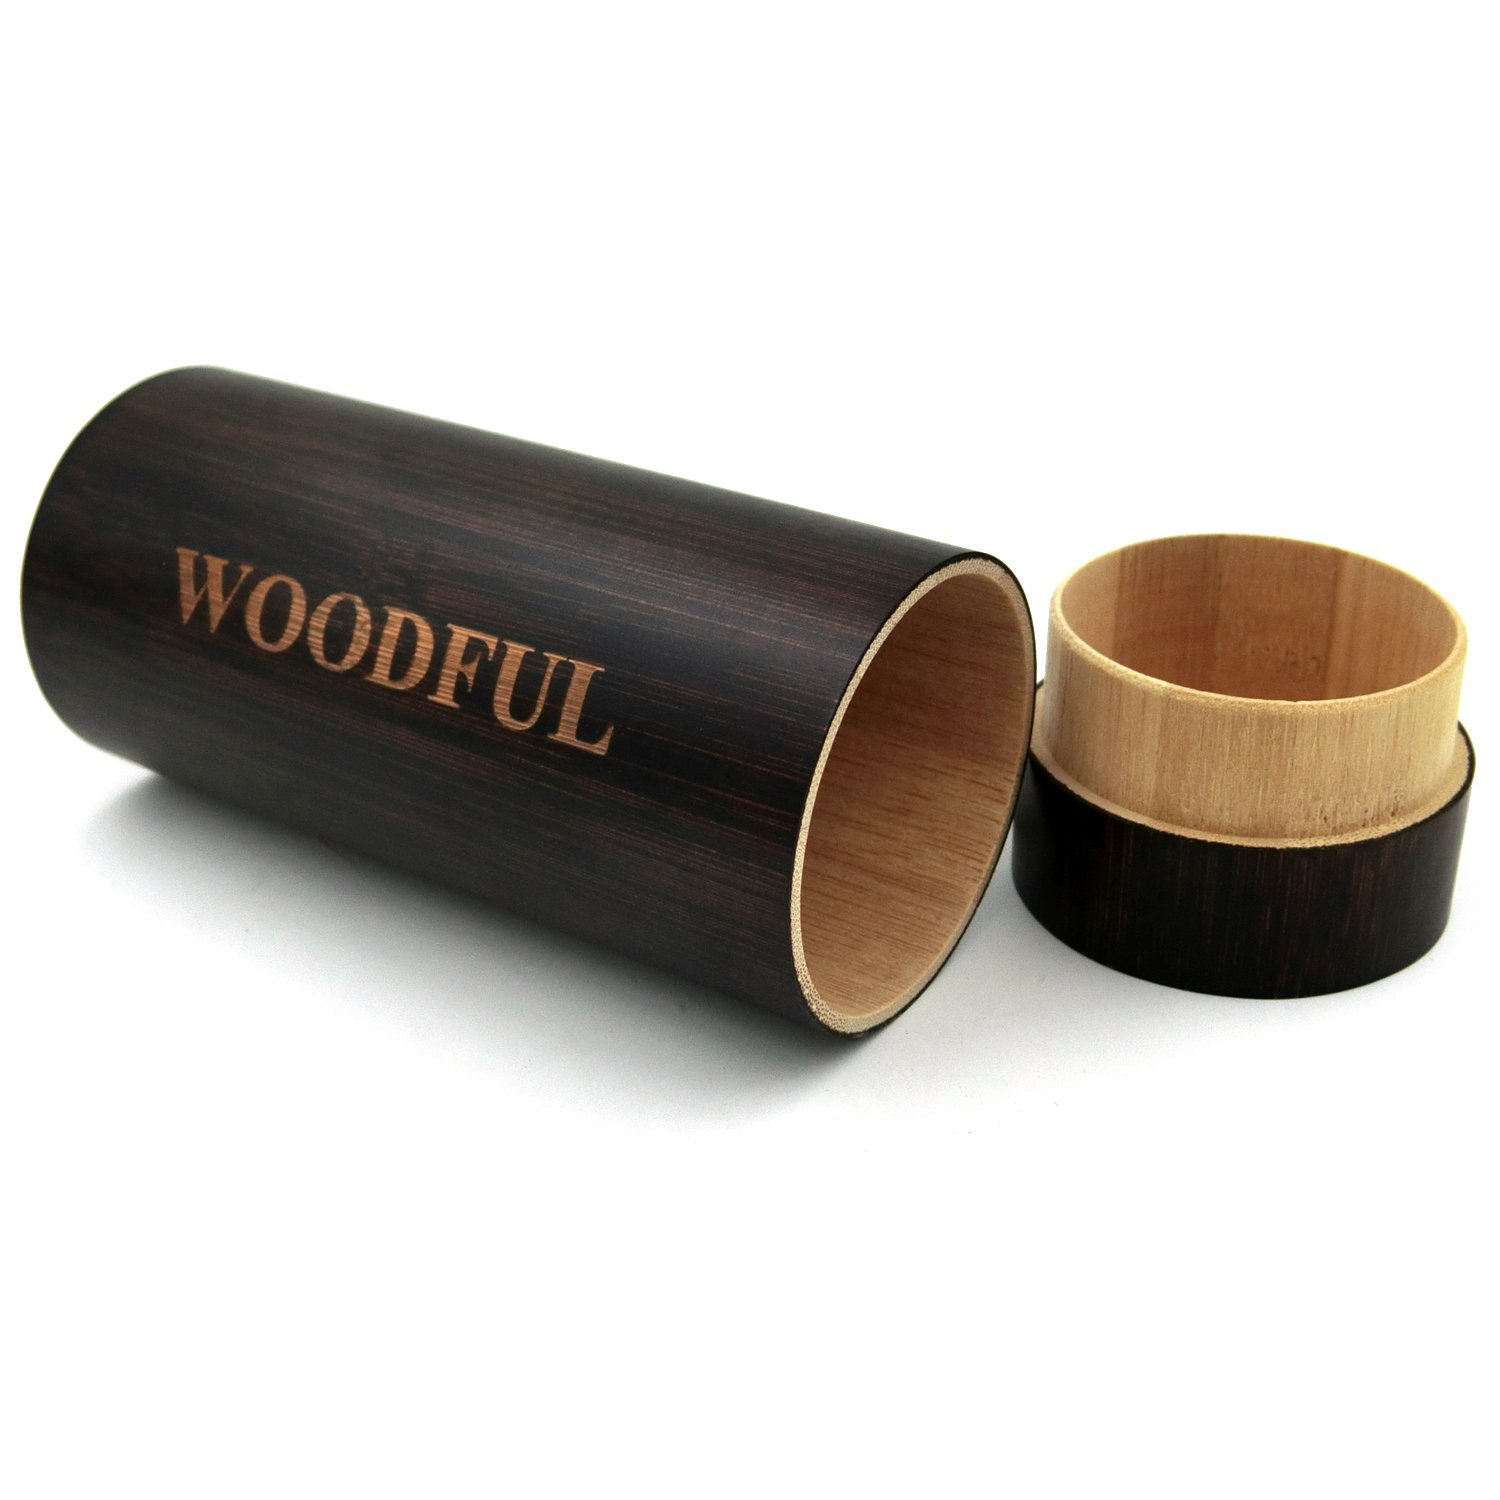 Bamboo Sunglasses Case Dark Brown Color Sunglasses Packaging by woodful